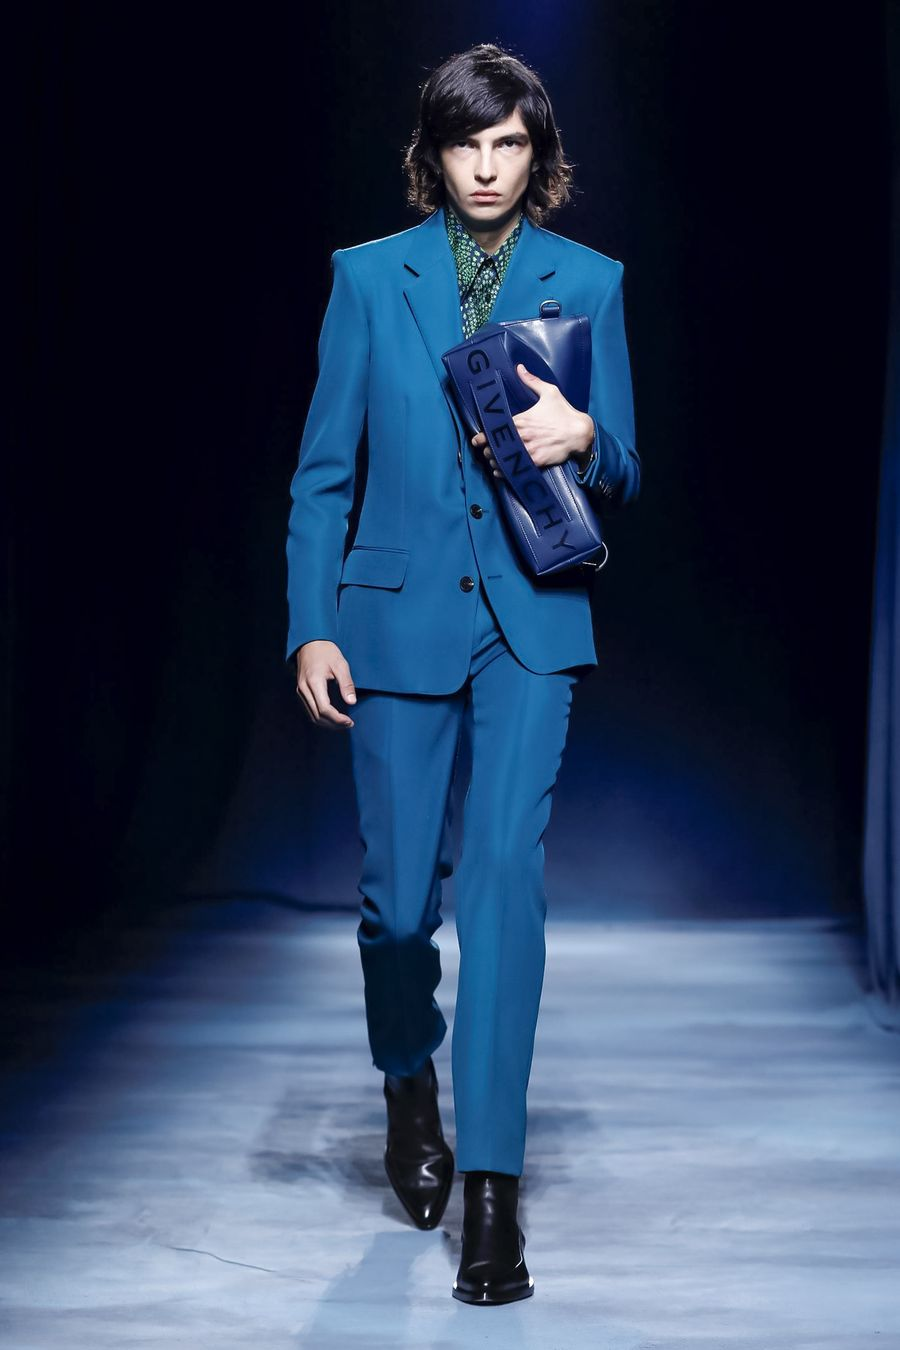 Givenchy SS19 menswear Clare Waight Keller blue suit leather bag